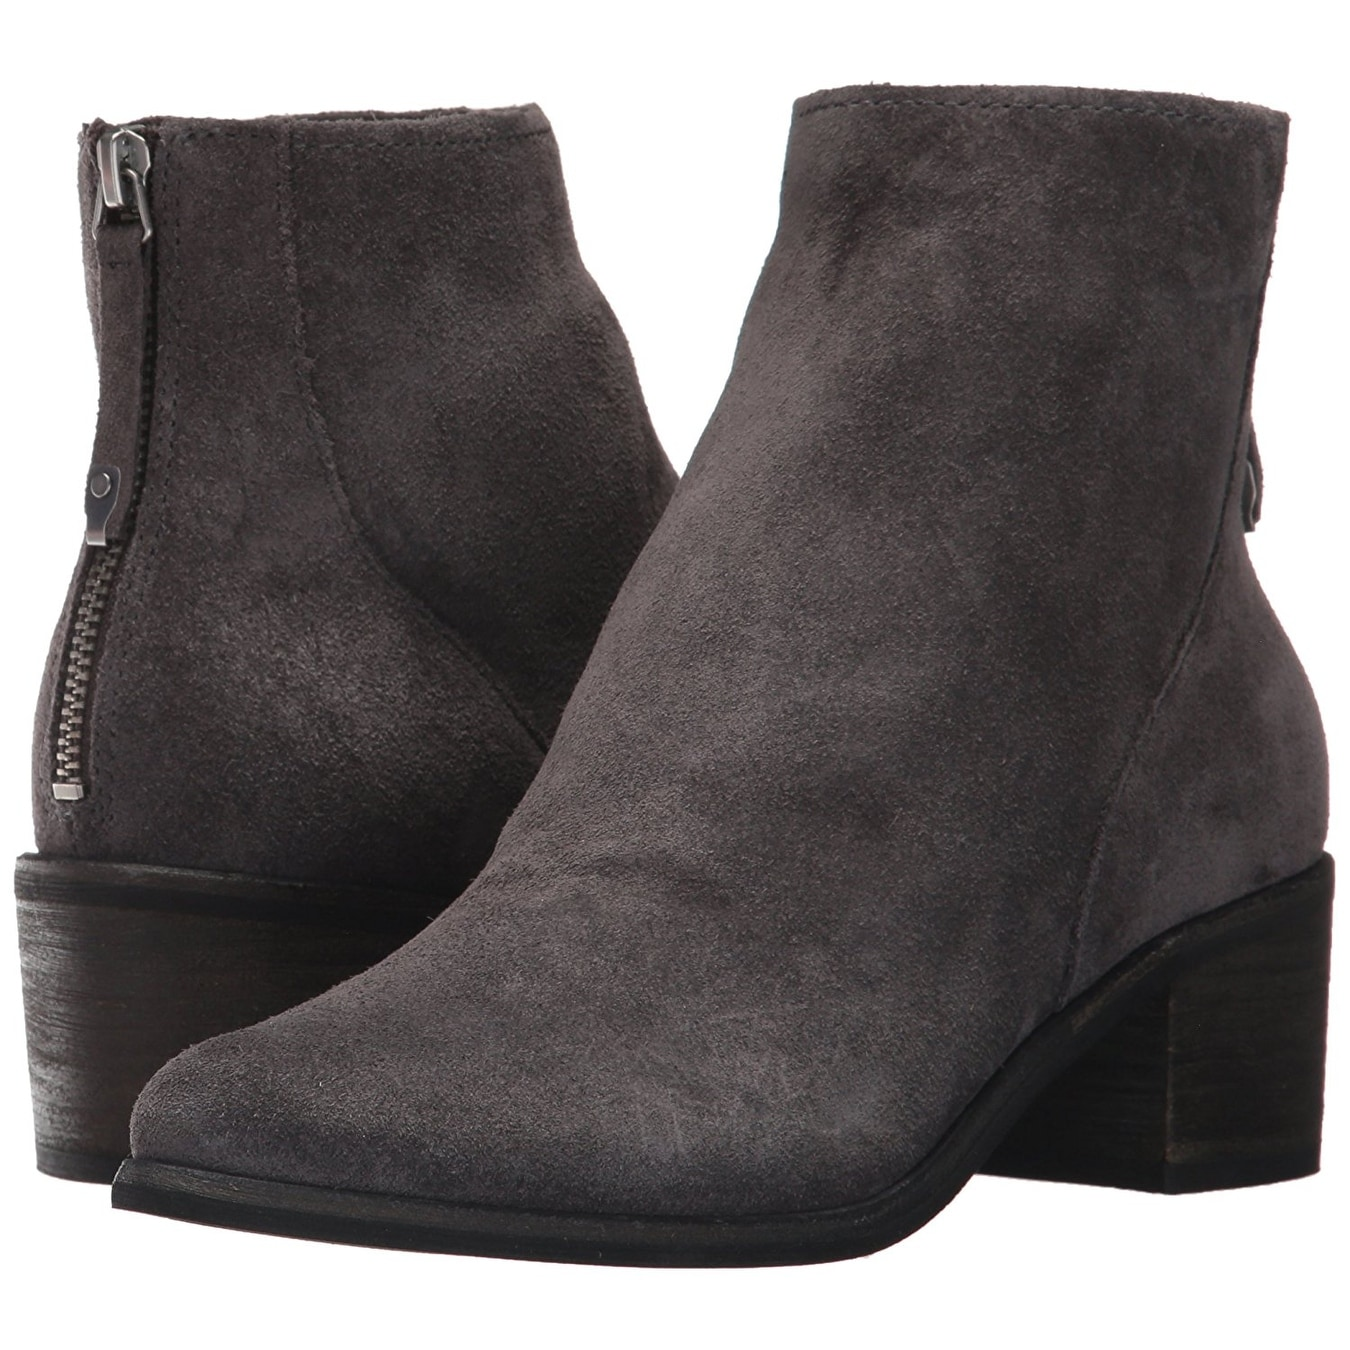 9de05b8ccb76 Shop Dolce Vita Womens cassius Pointed Toe Ankle Fashion Boots - Free  Shipping Today - Overstock - 22337346